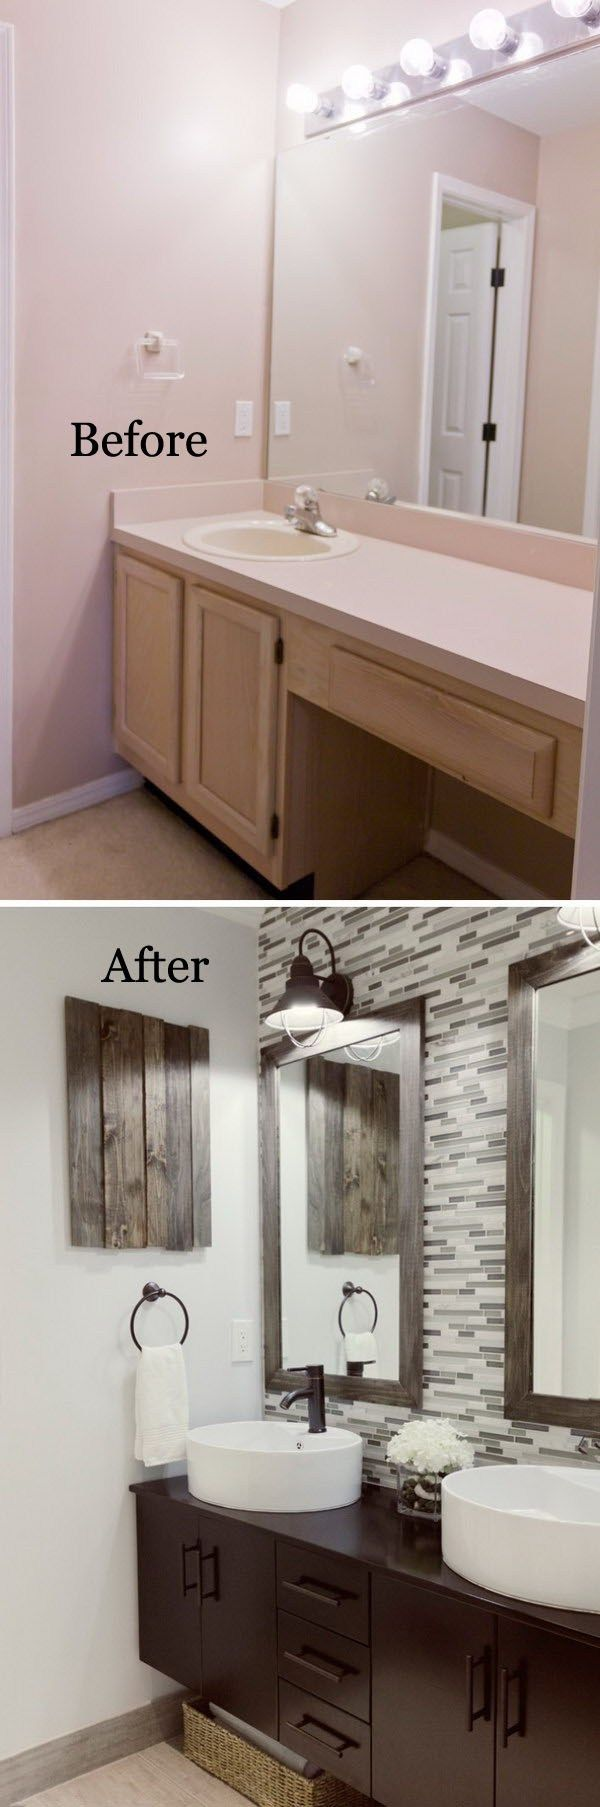 37 Small Bathroom Makeovers Before And After Pics Pinterest Small Bathroom Makeovers